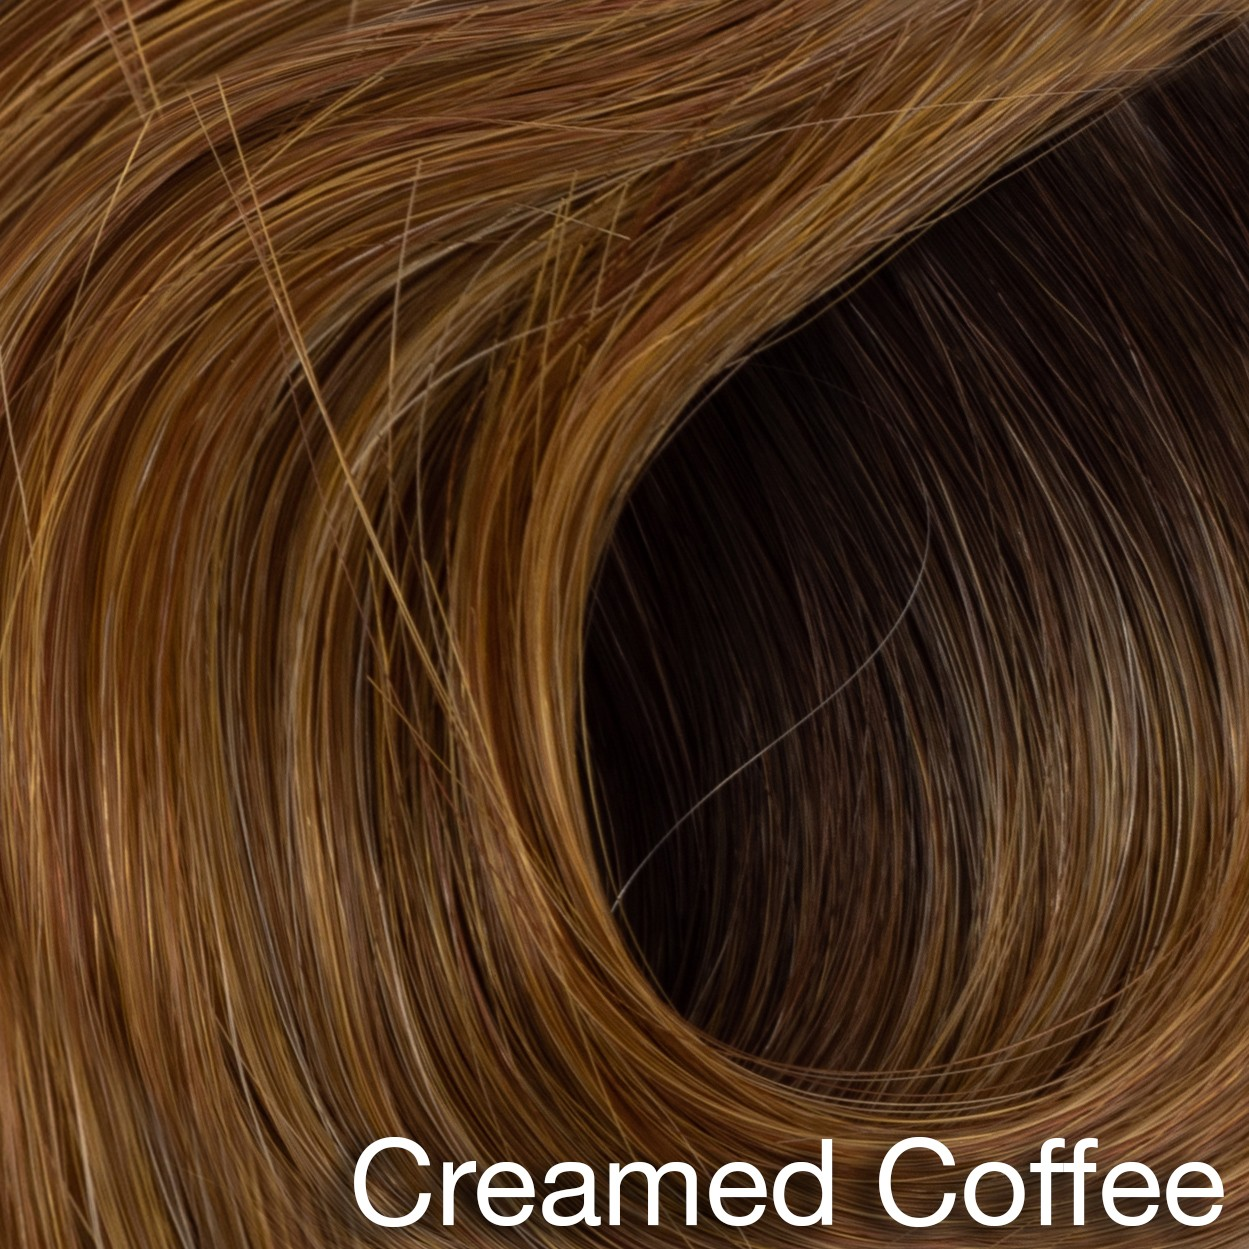 Creamed Coffee Rooted